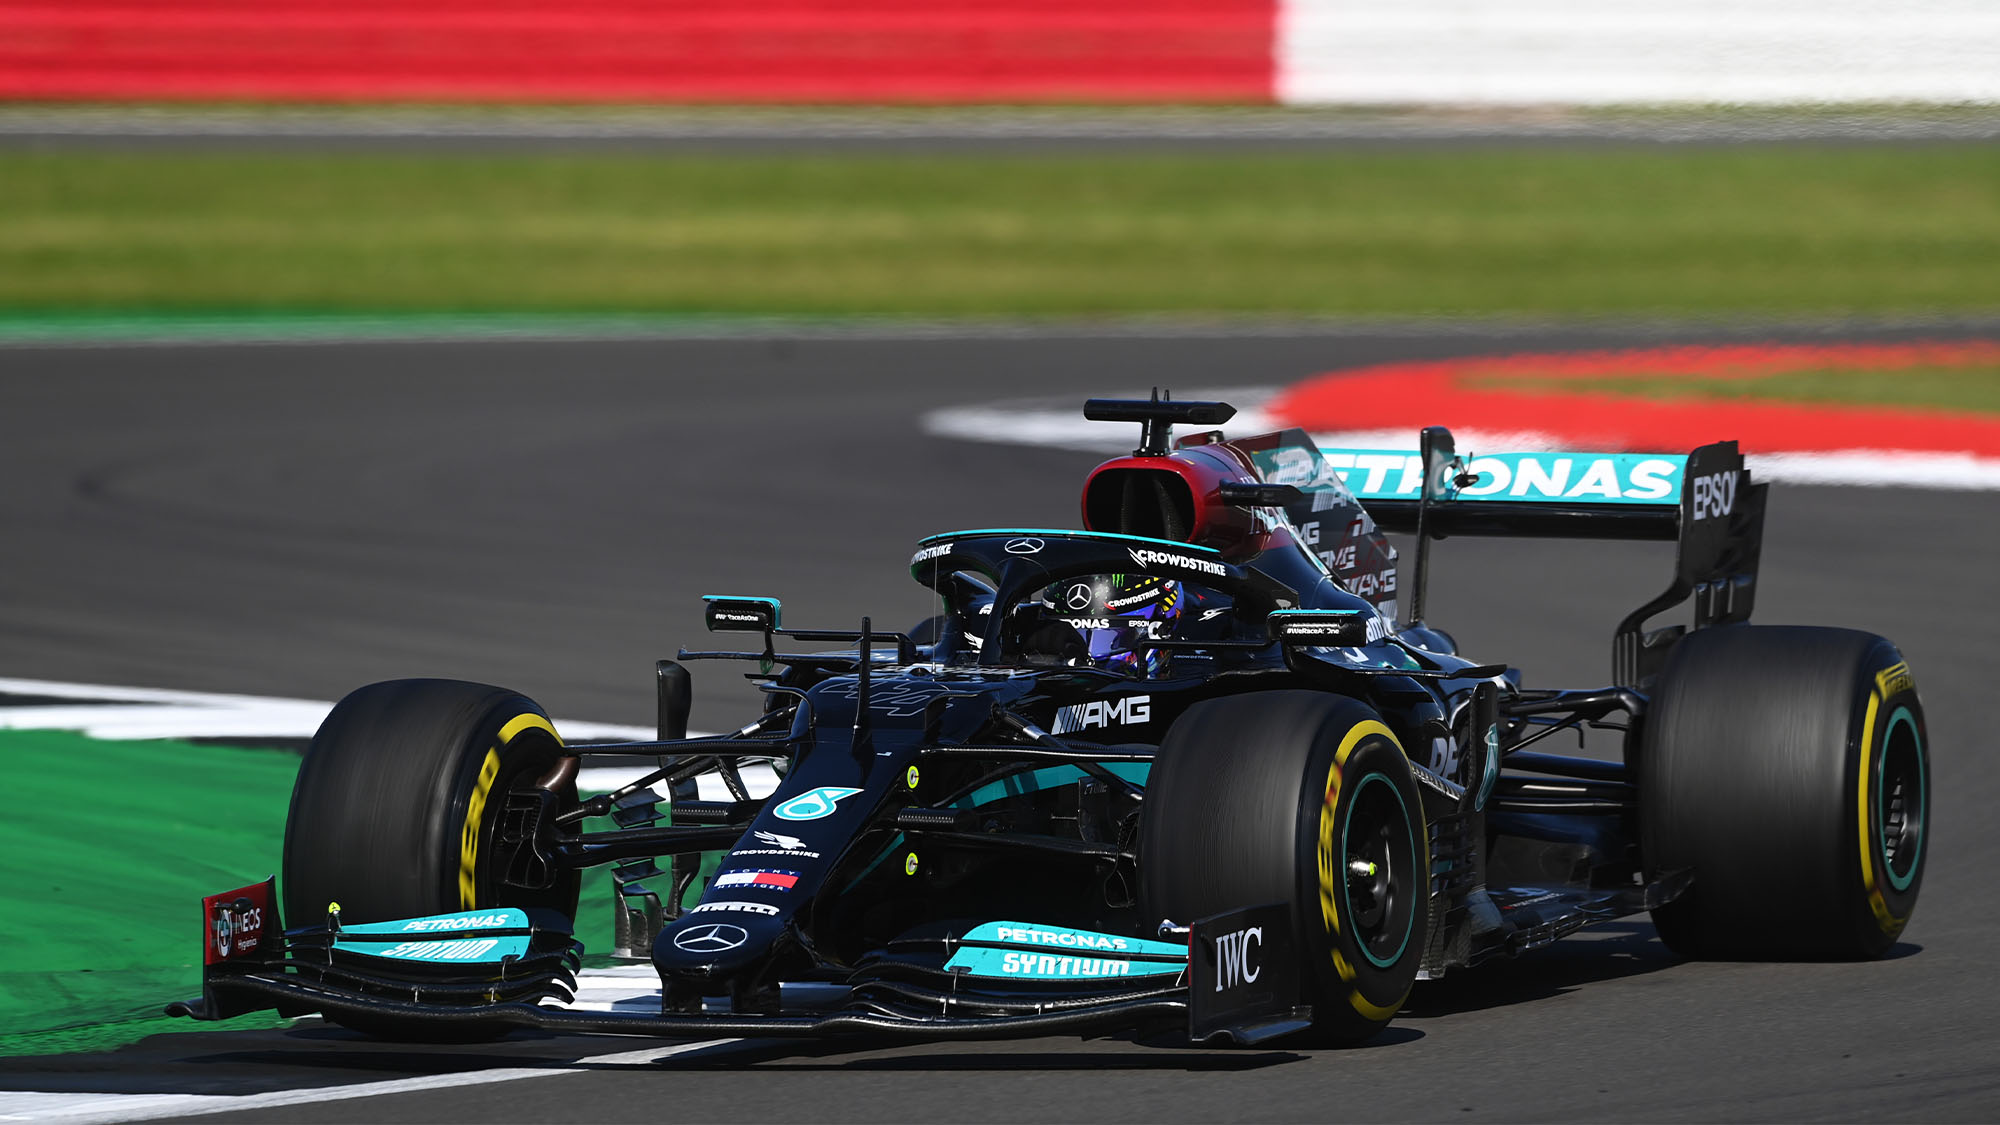 NORTHAMPTON, ENGLAND - JULY 18: Lewis Hamilton of Great Britain driving the (44) Mercedes AMG Petronas F1 Team Mercedes W12 during the F1 Grand Prix of Great Britain at Silverstone on July 18, 2021 in Northampton, England. (Photo by Michael Regan/Getty Images)